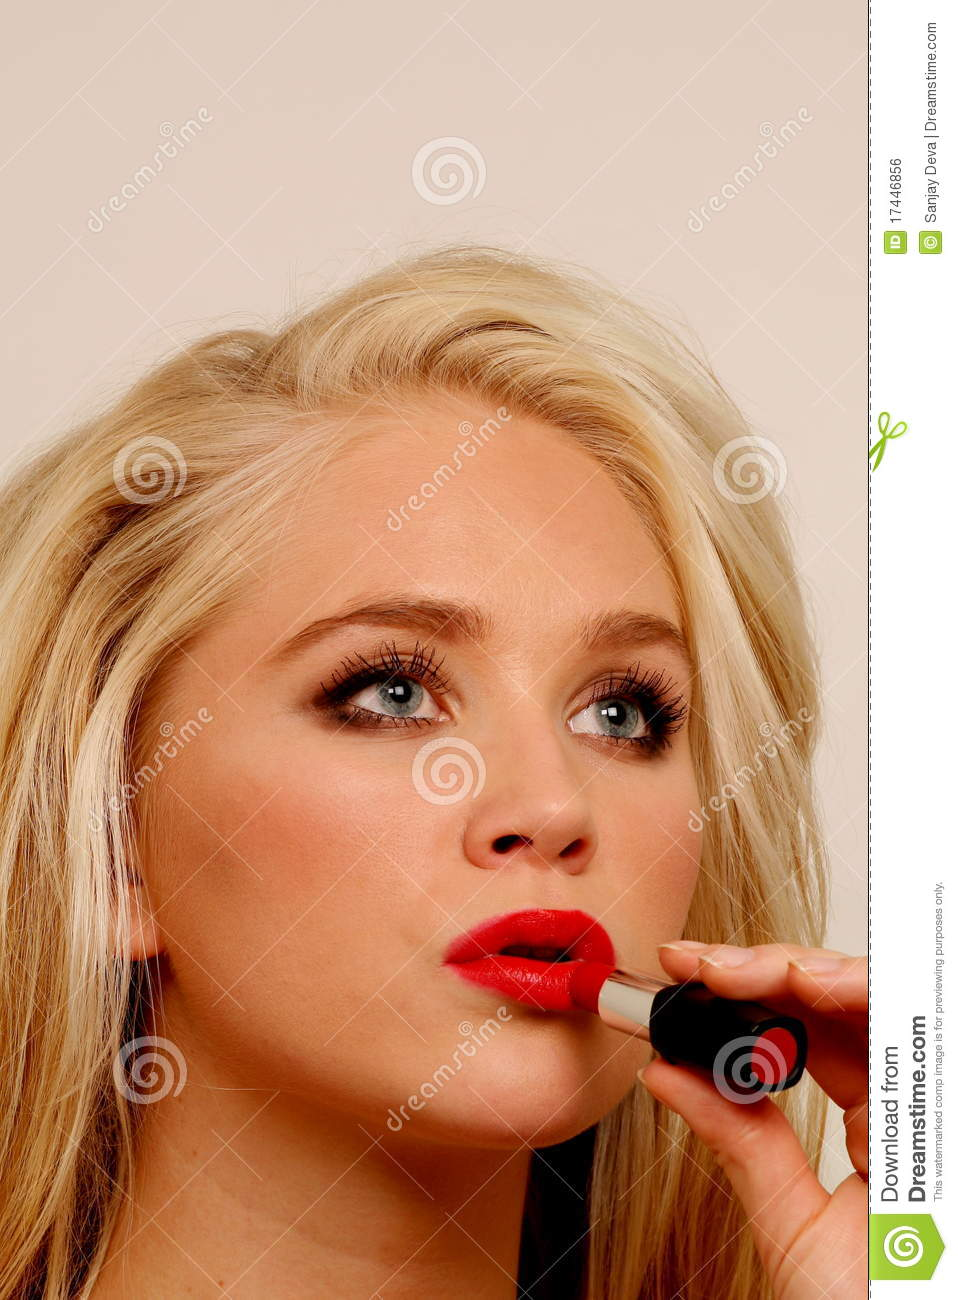 Female Putting On Lipstick Stock Photo. Image Of Stock